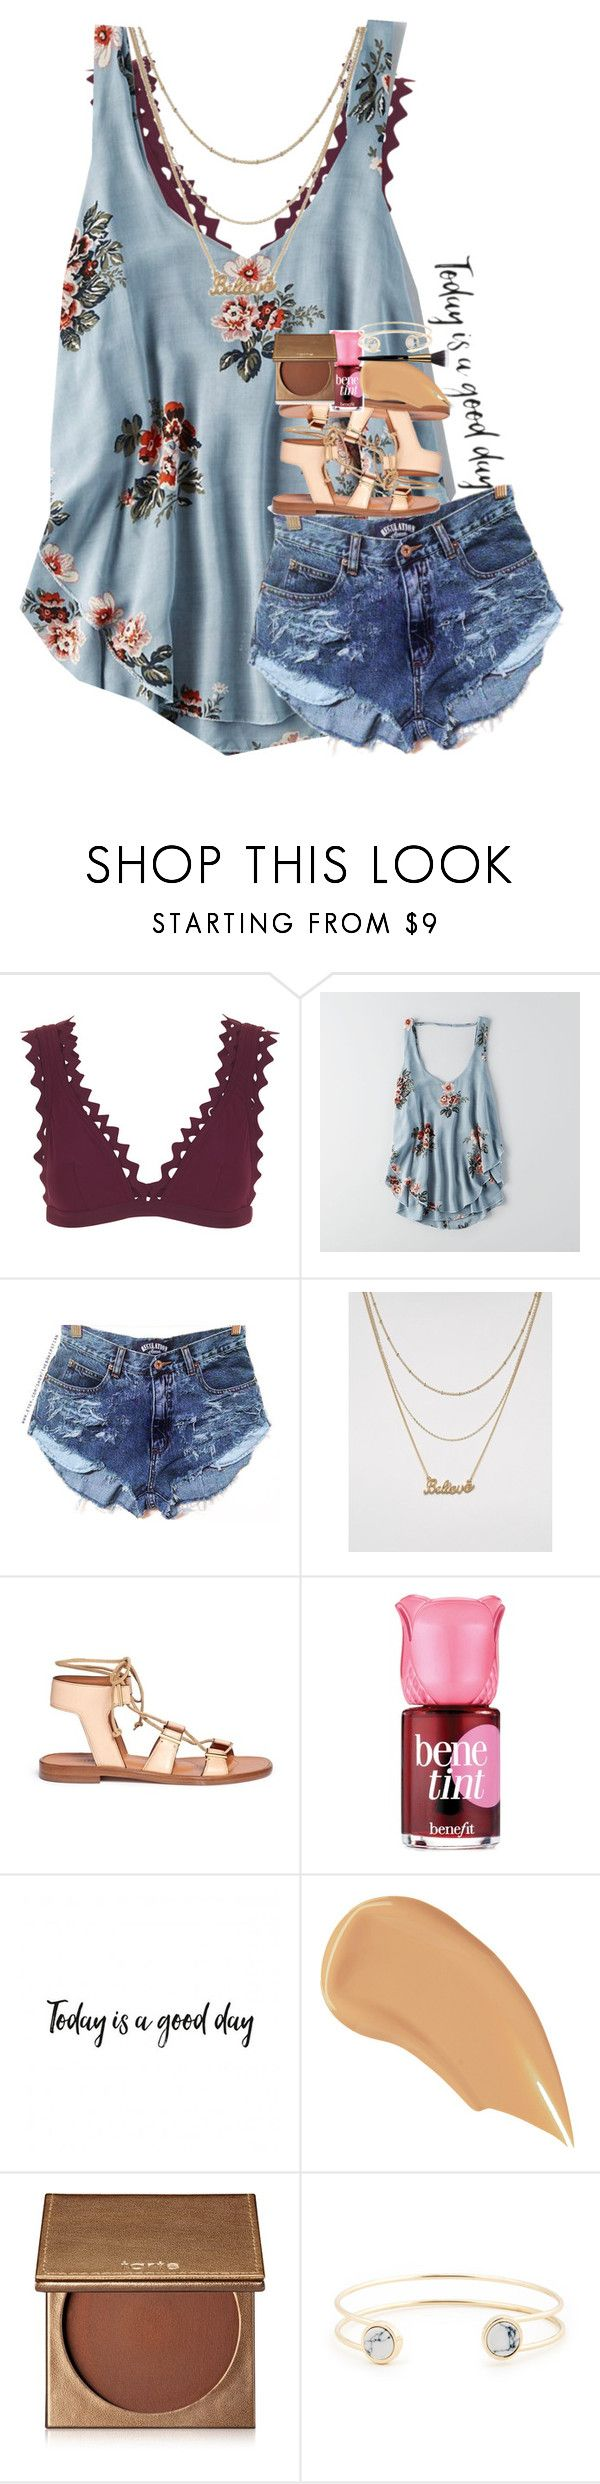 """""""you're loved, even when you feel alone. hang on. it gets easier, then it gets okay, then it feels like freedom."""" by ellaswiftie13 on Polyvore featuring Karla Colletto, American Eagle Outfitters, Monki, Rosetta Getty, Benefit, NARS Cosmetics, tarte, Sole Society and Yves Saint Laurent"""